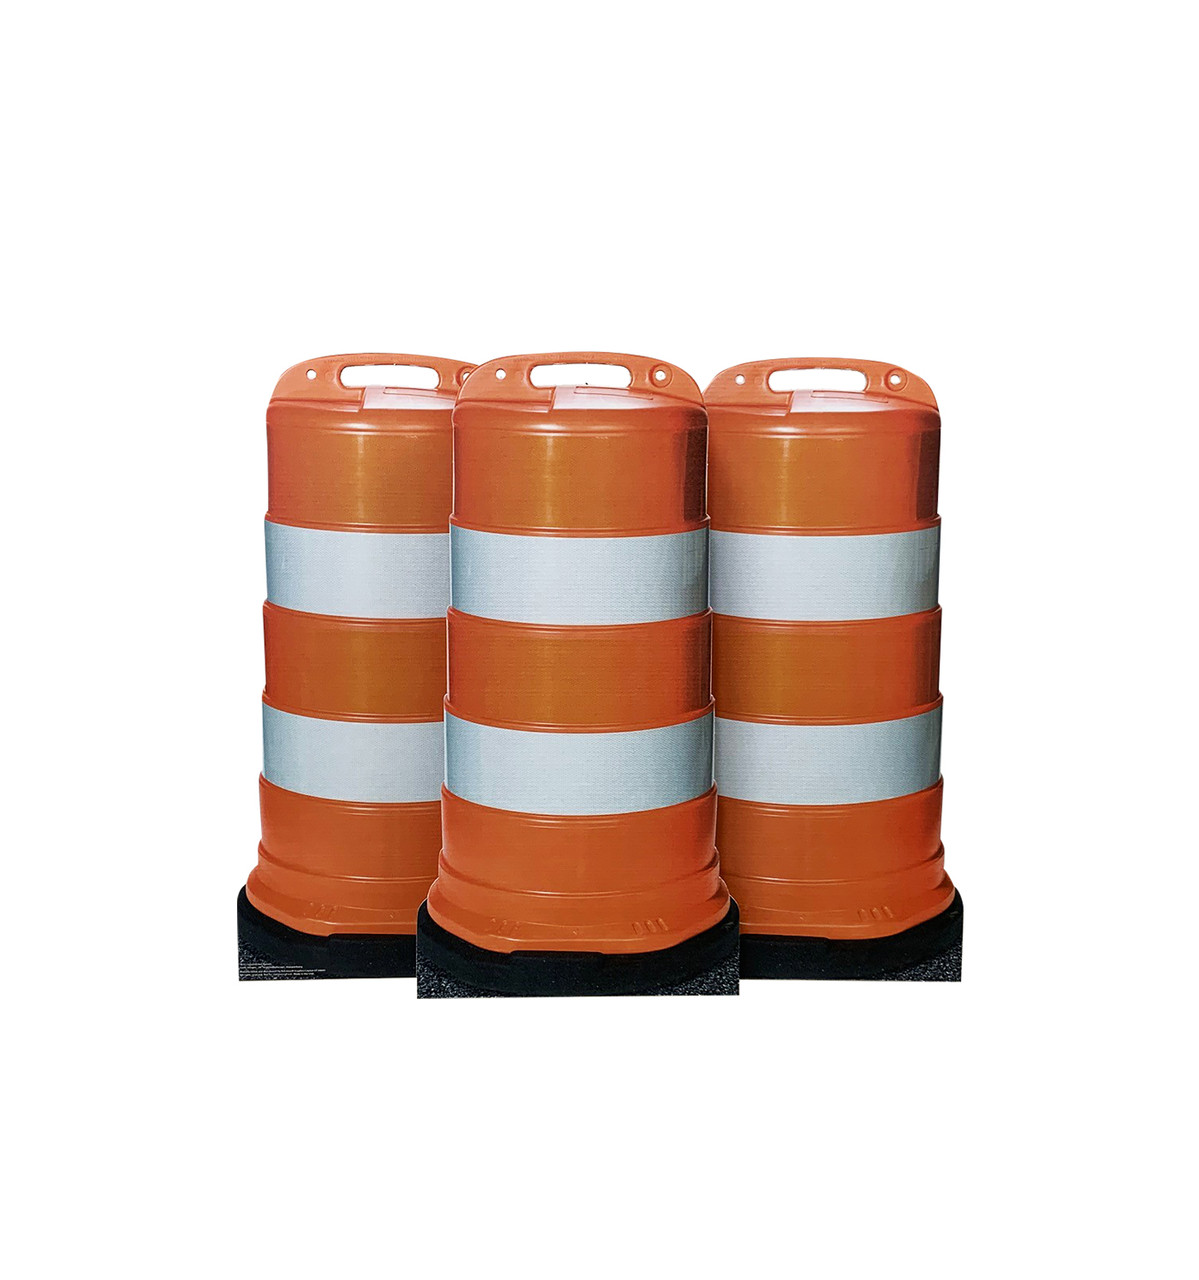 Life-size cardboard standee of construction barrels (set of 3).